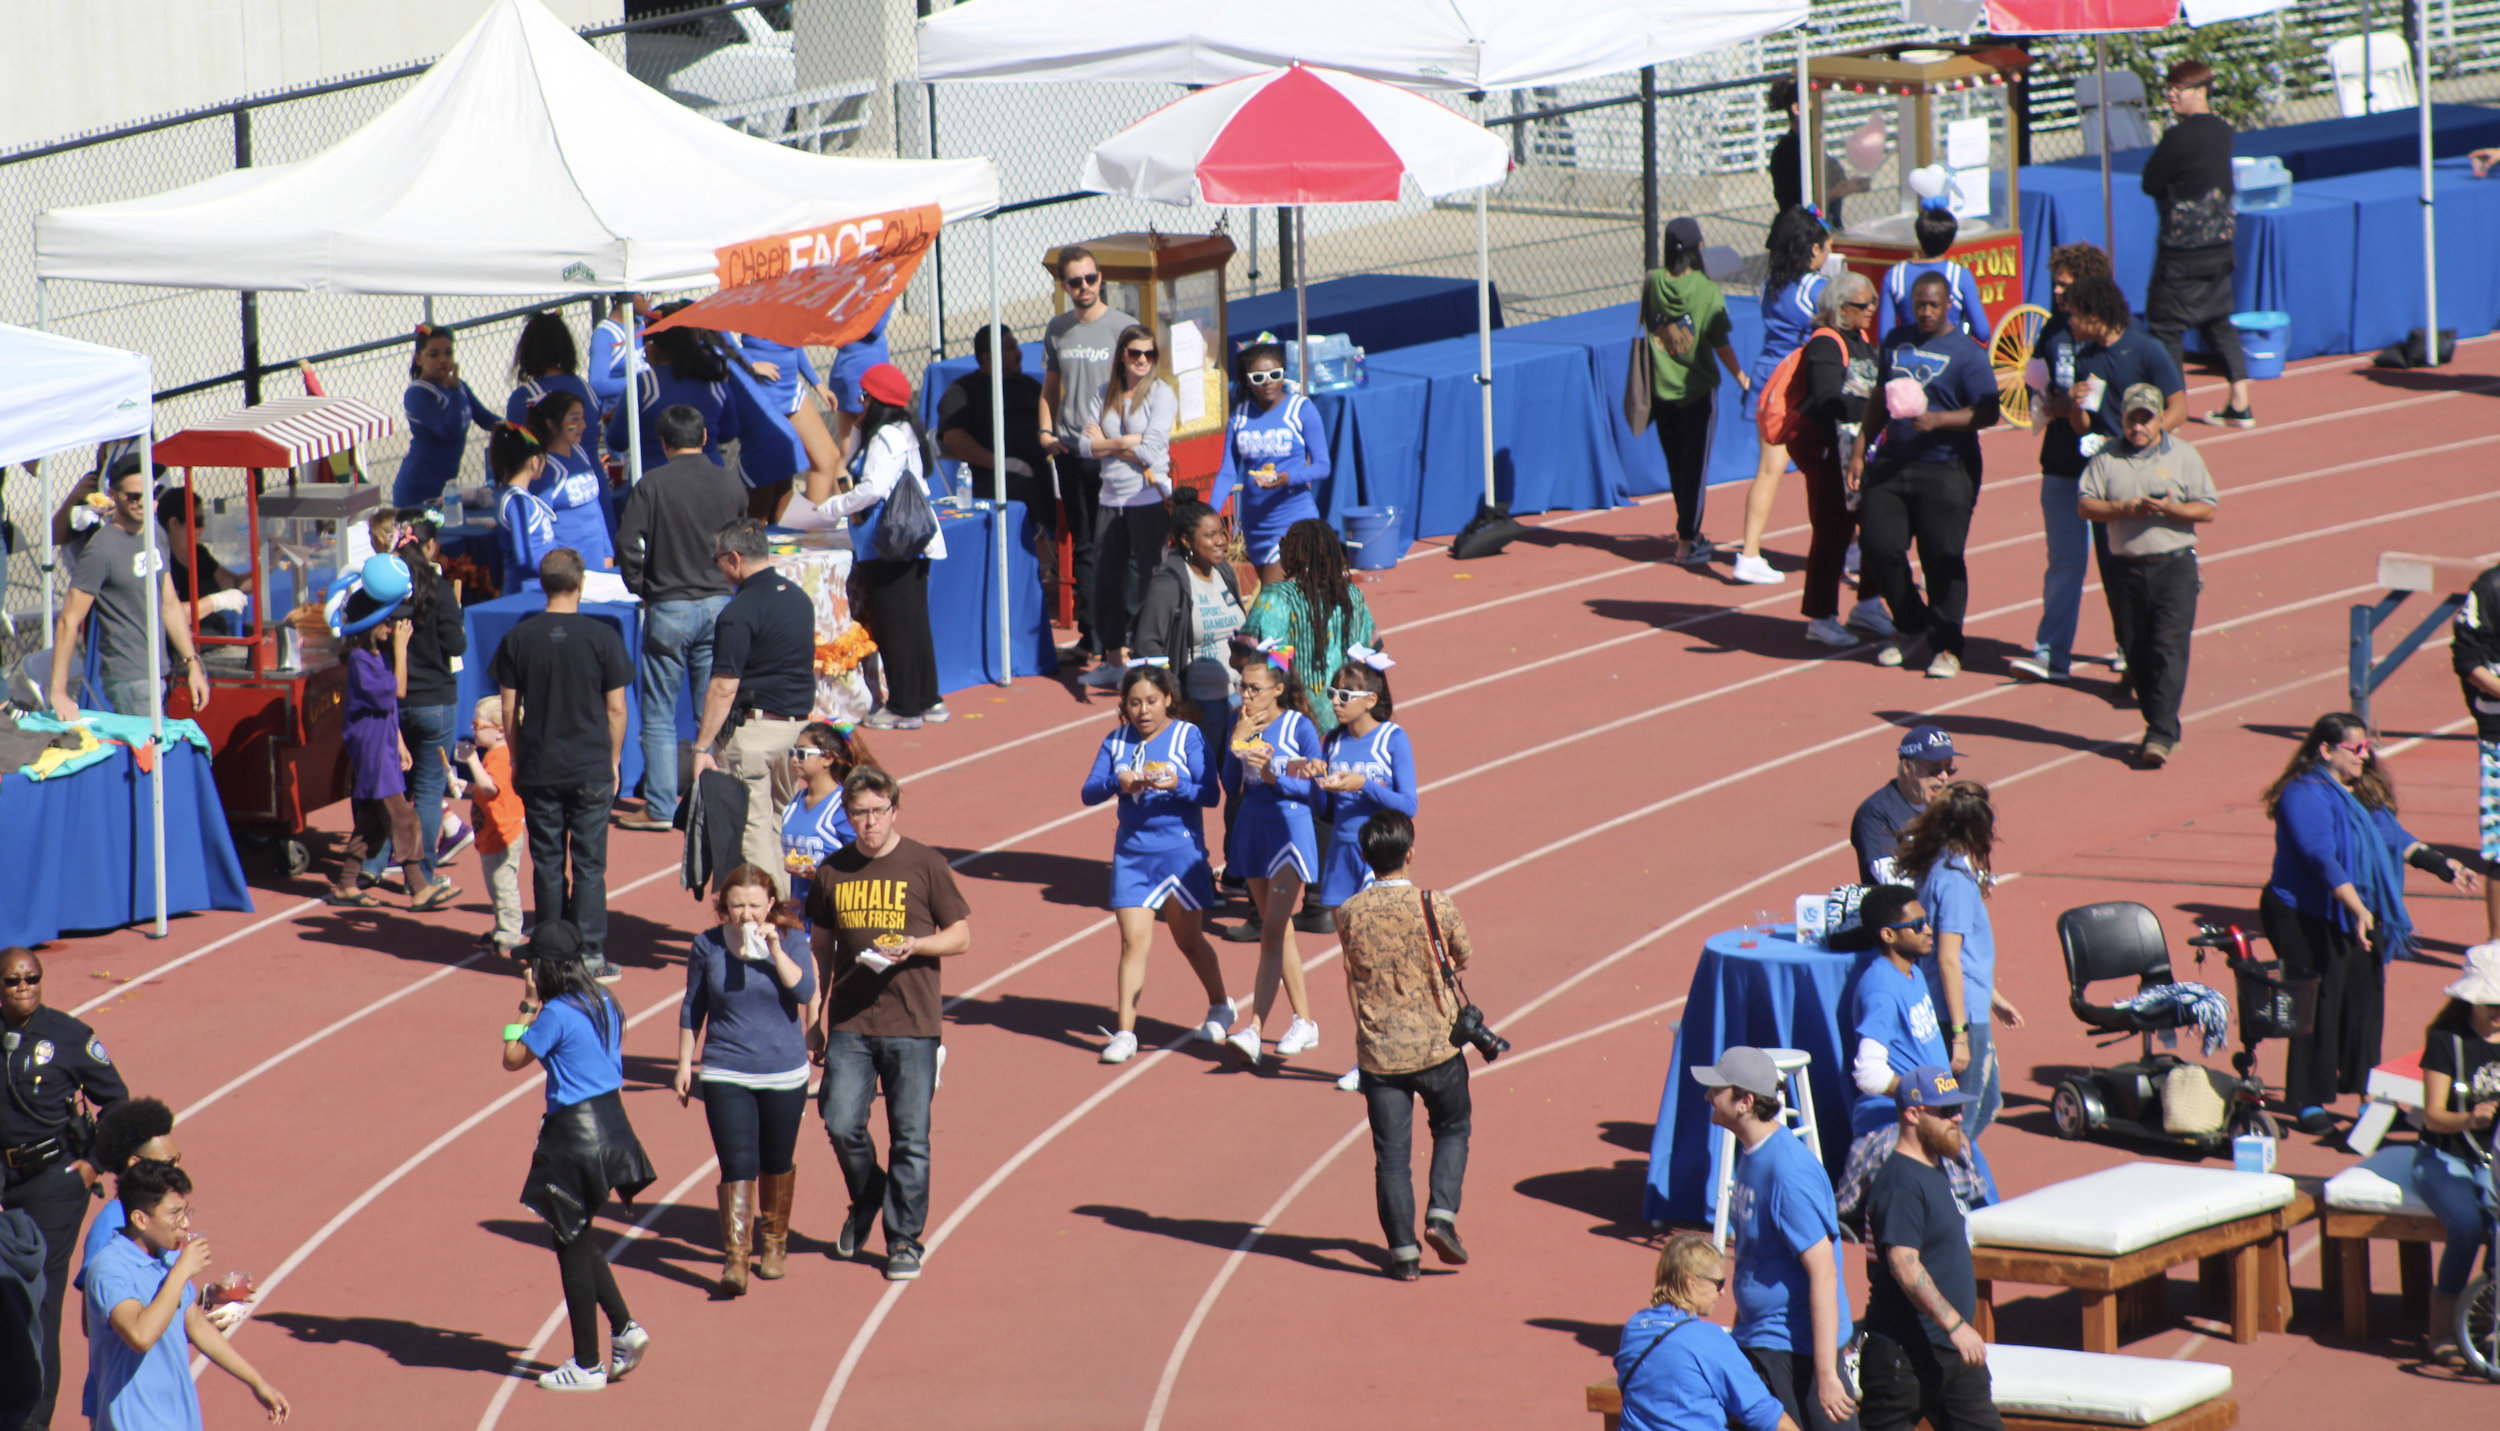 Santa Monica College students, alumni, and fans enjoying the pregame Tailgate Party on the athletic field at SMC during Homecoming 2017 on Saturday November 4, 2017. (Photo by Jessica Uhler )